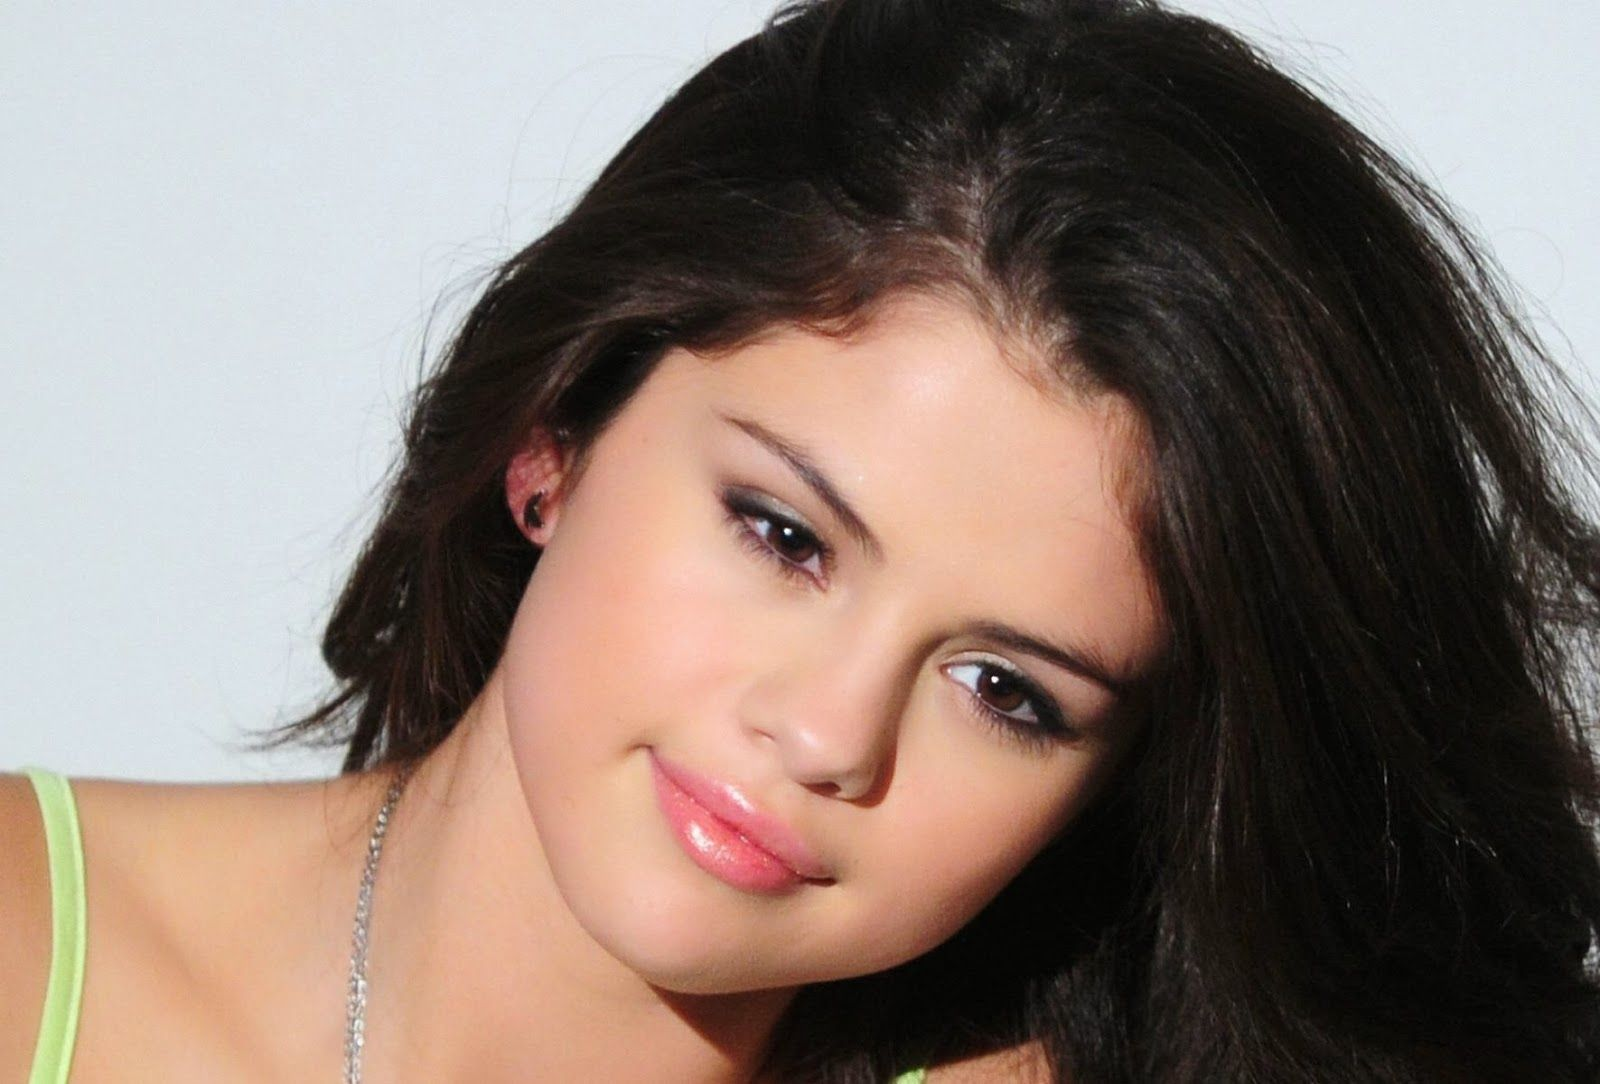 Selena Gomez Wallpapers High Quality Download Free 1280x1024 Pic 56